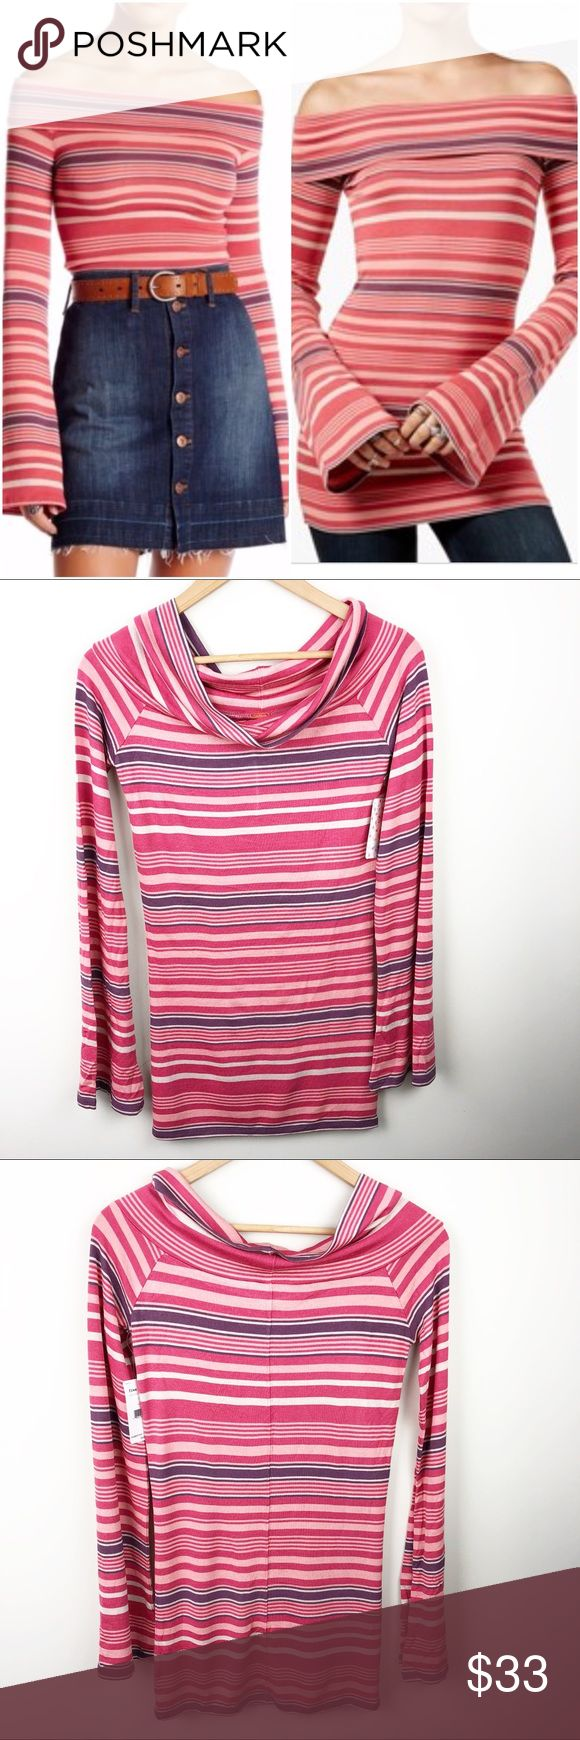 """Free People Portland Striped Long Sleeve Top Brand new with tags!   Free People Portland Striped Long Sleeve Top  size large.   • length 29"""" • arm pit to arm pit 16"""" • 97% viscose 3% spandex  • bell sleeves   (232) Free People Tops"""